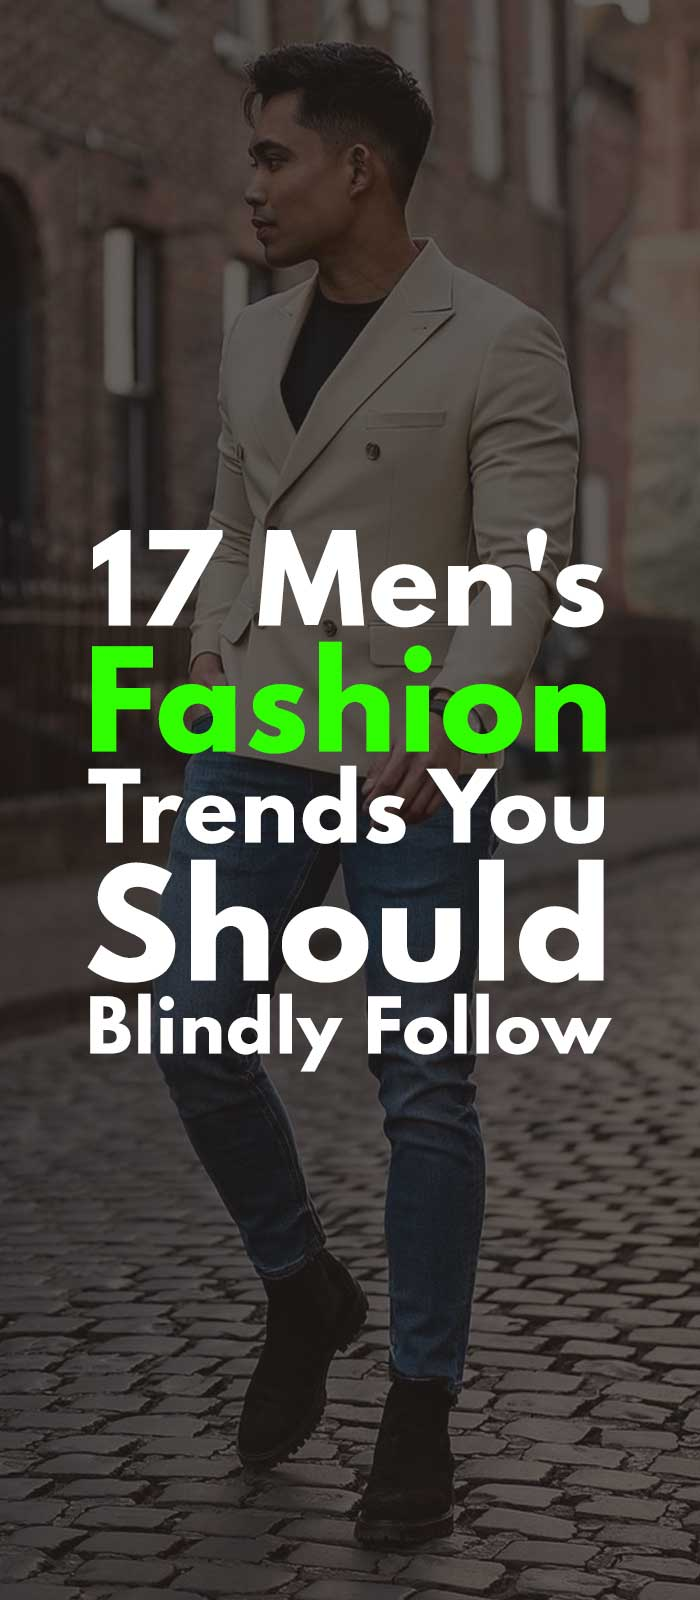 17 Men's Fashion Trends You Should Blindly Follow